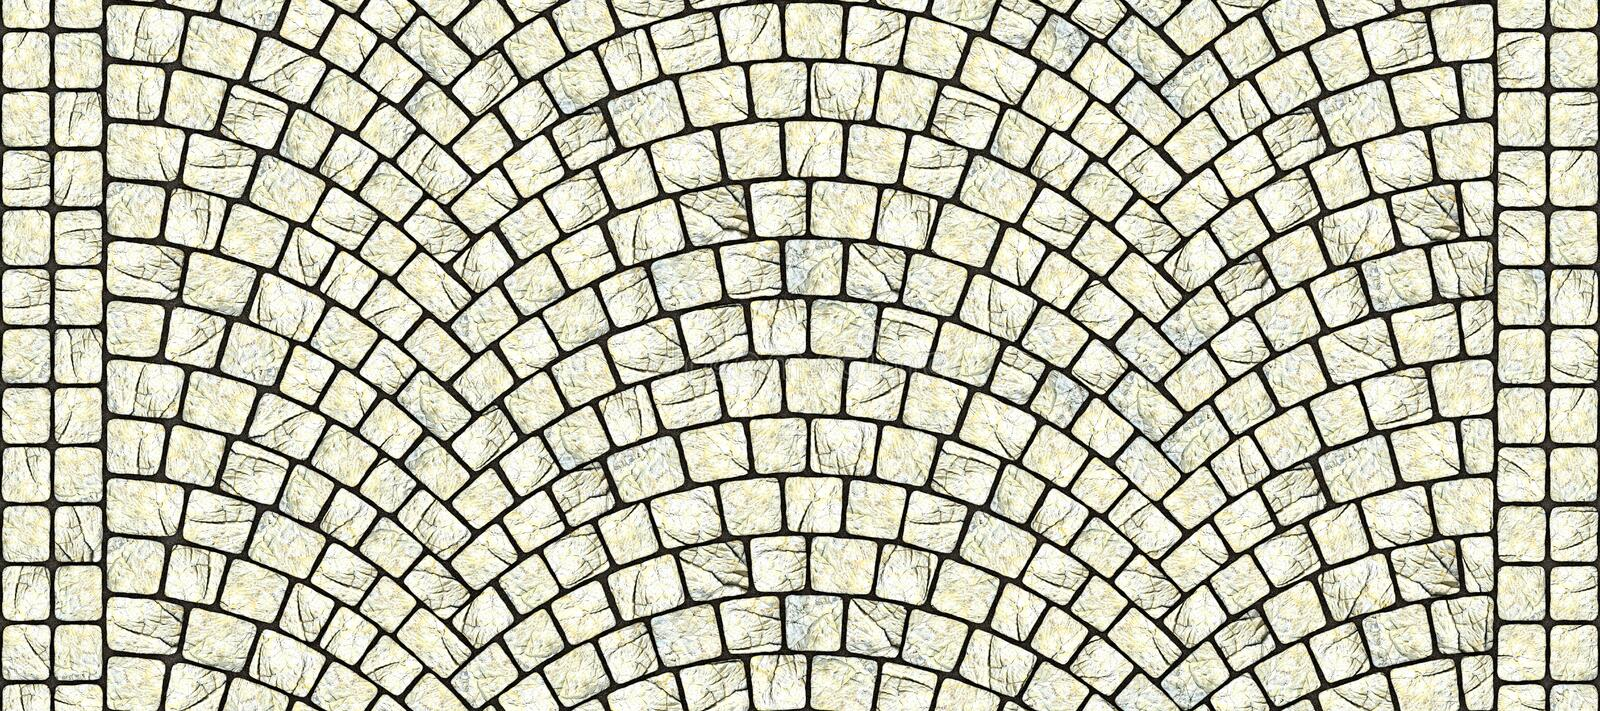 Road curved cobblestone texture 106. Cobblestone arched pavement road with edge courses at the sidewalk. Seamless tileable repeating 3D rendering texture stock illustration